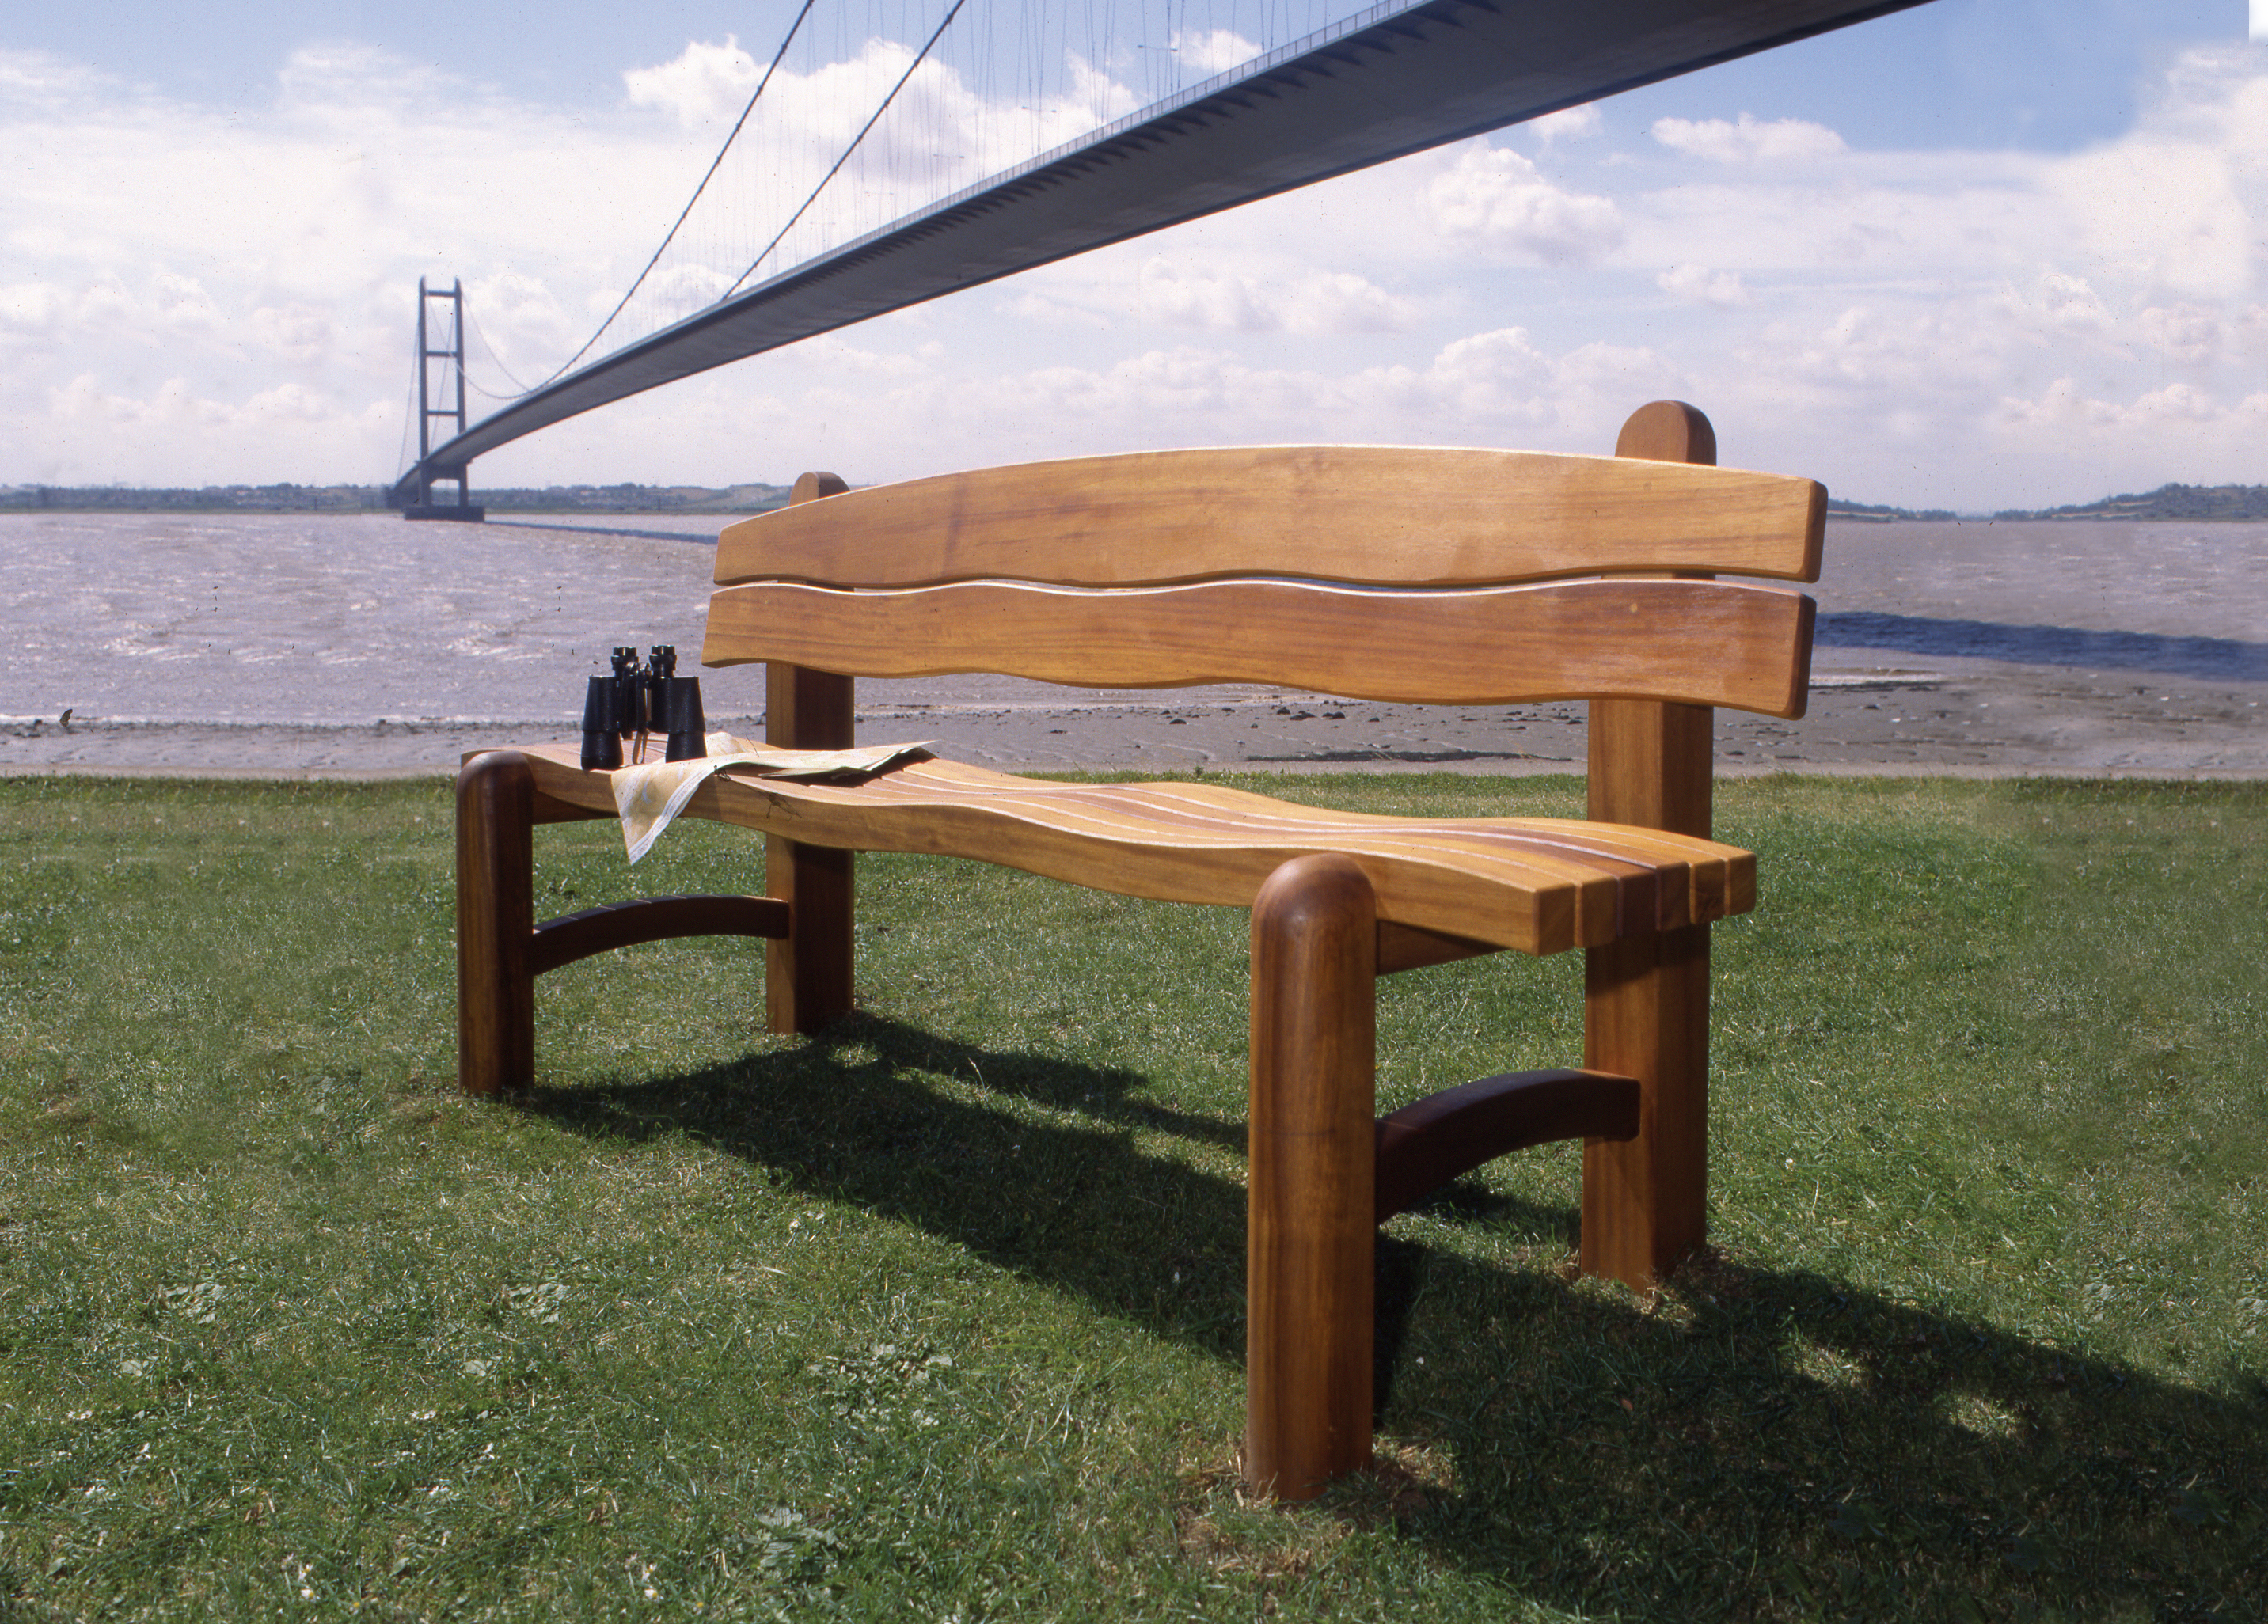 Waveform Wooden Garden Bench inspired by the Humber